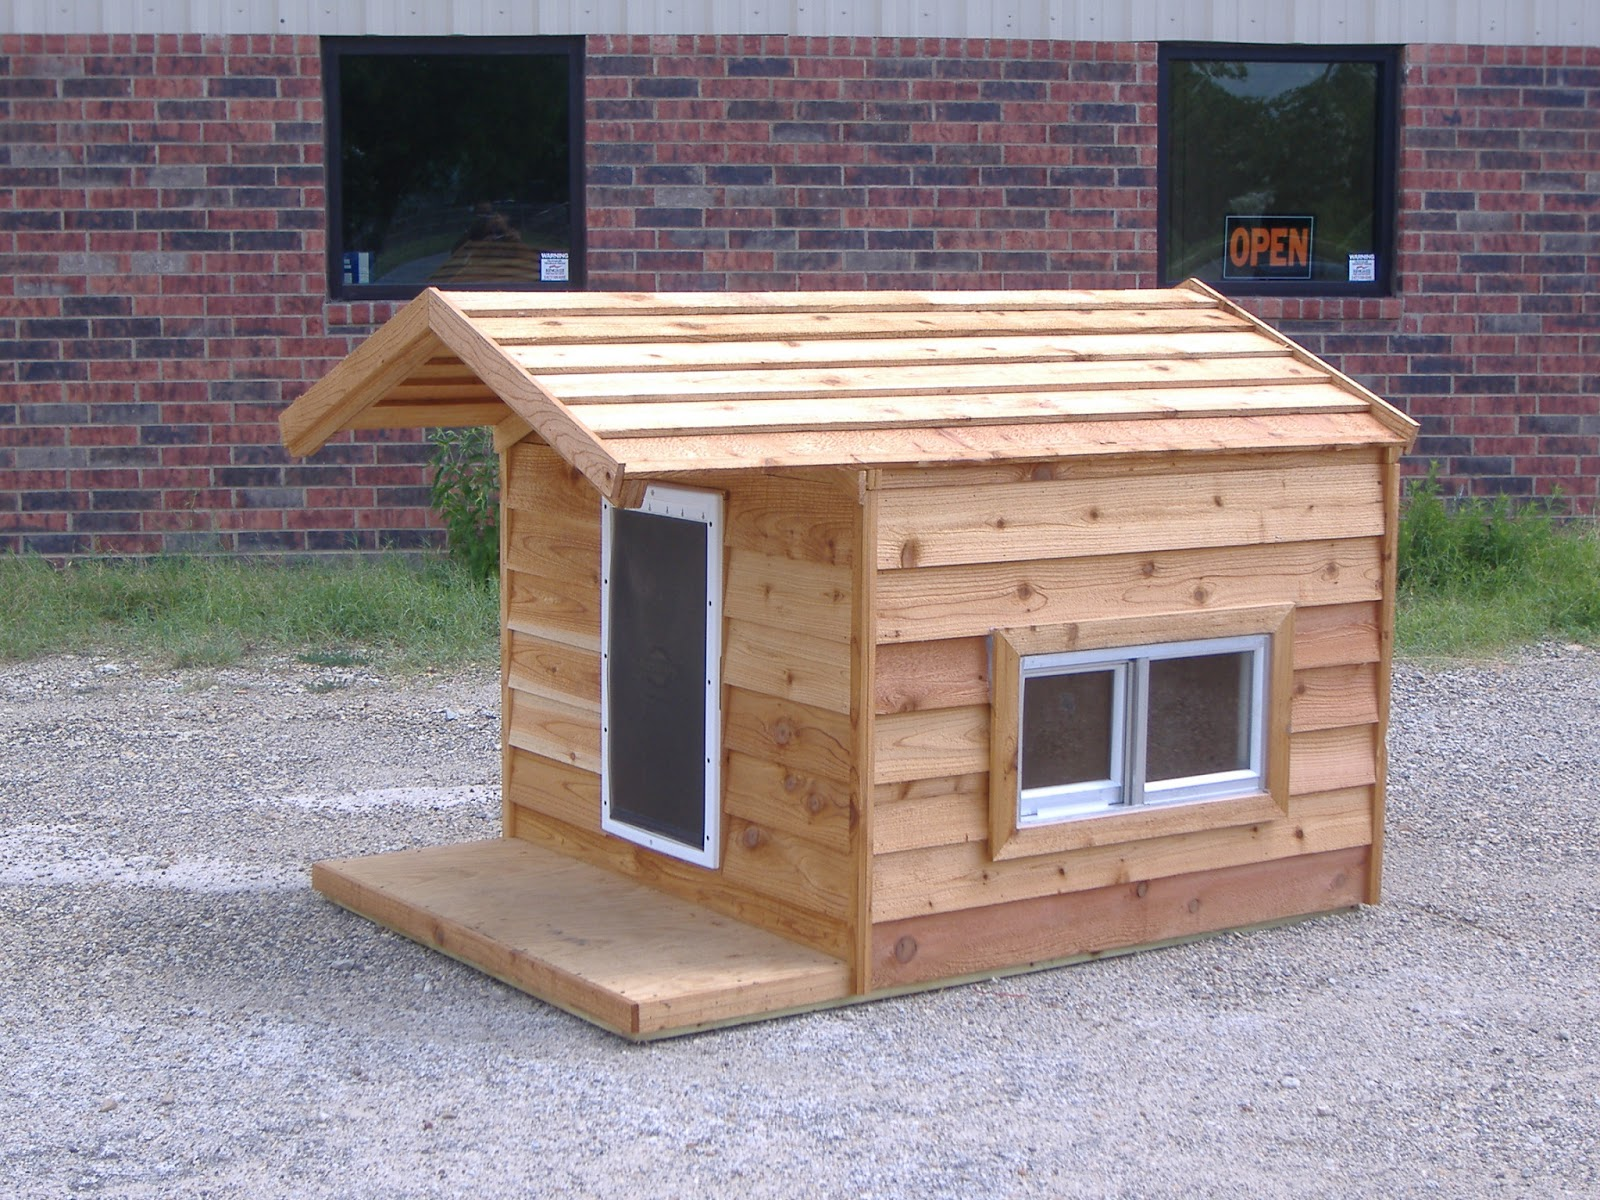 Diy dog houses dog house plans aussiedoodle and for Insulated heated dog house